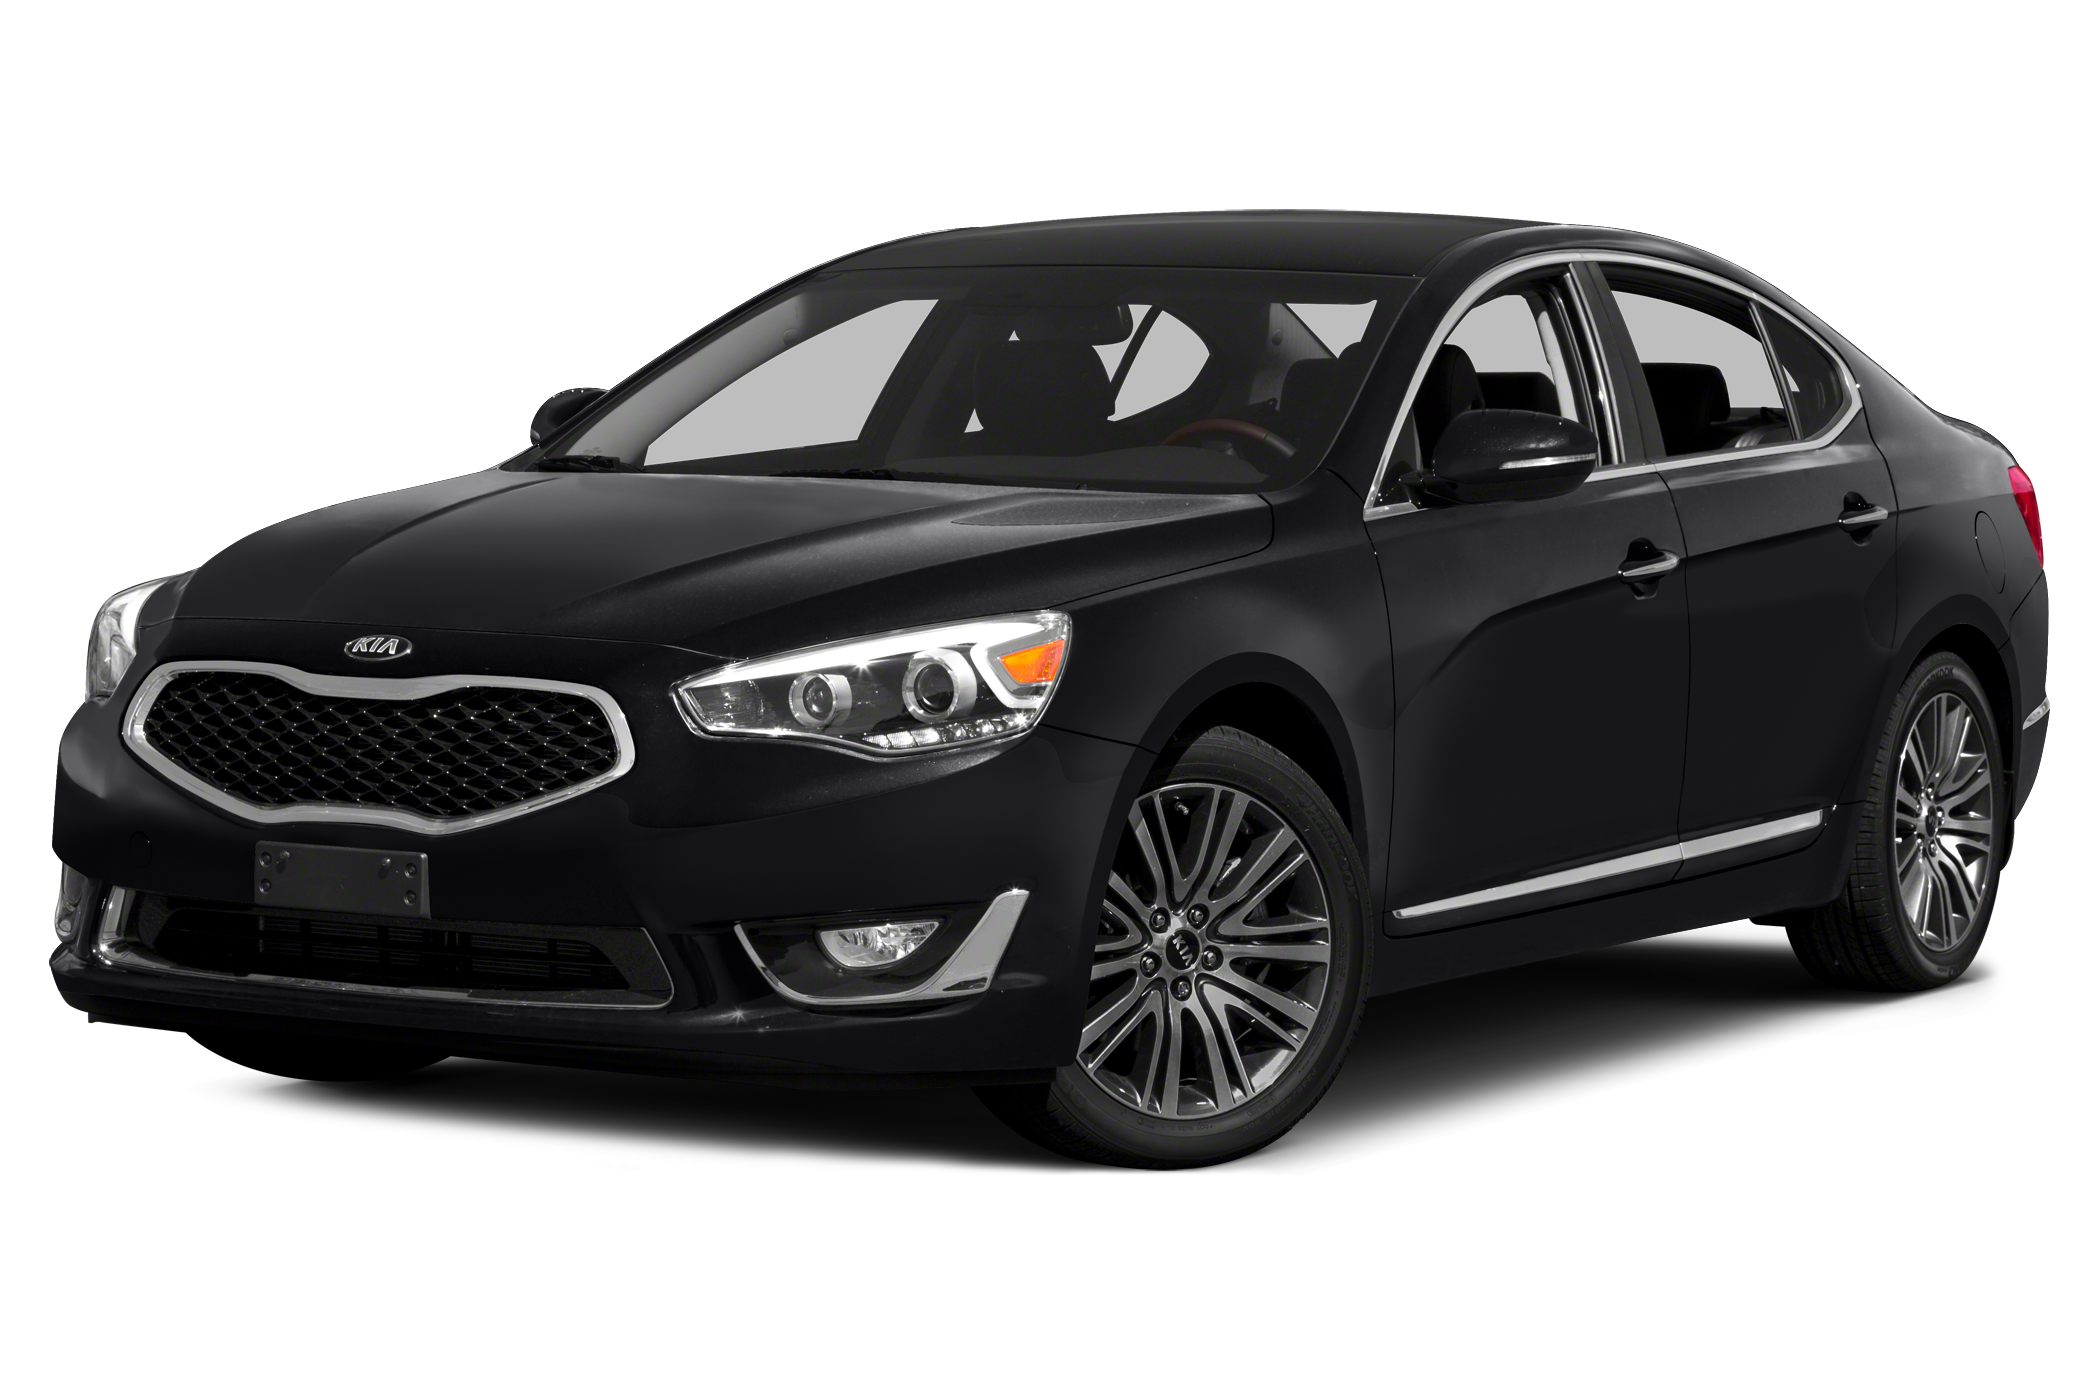 2014 Kia Cadenza Premium Sedan for sale in Pendleton for $28,900 with 13,383 miles